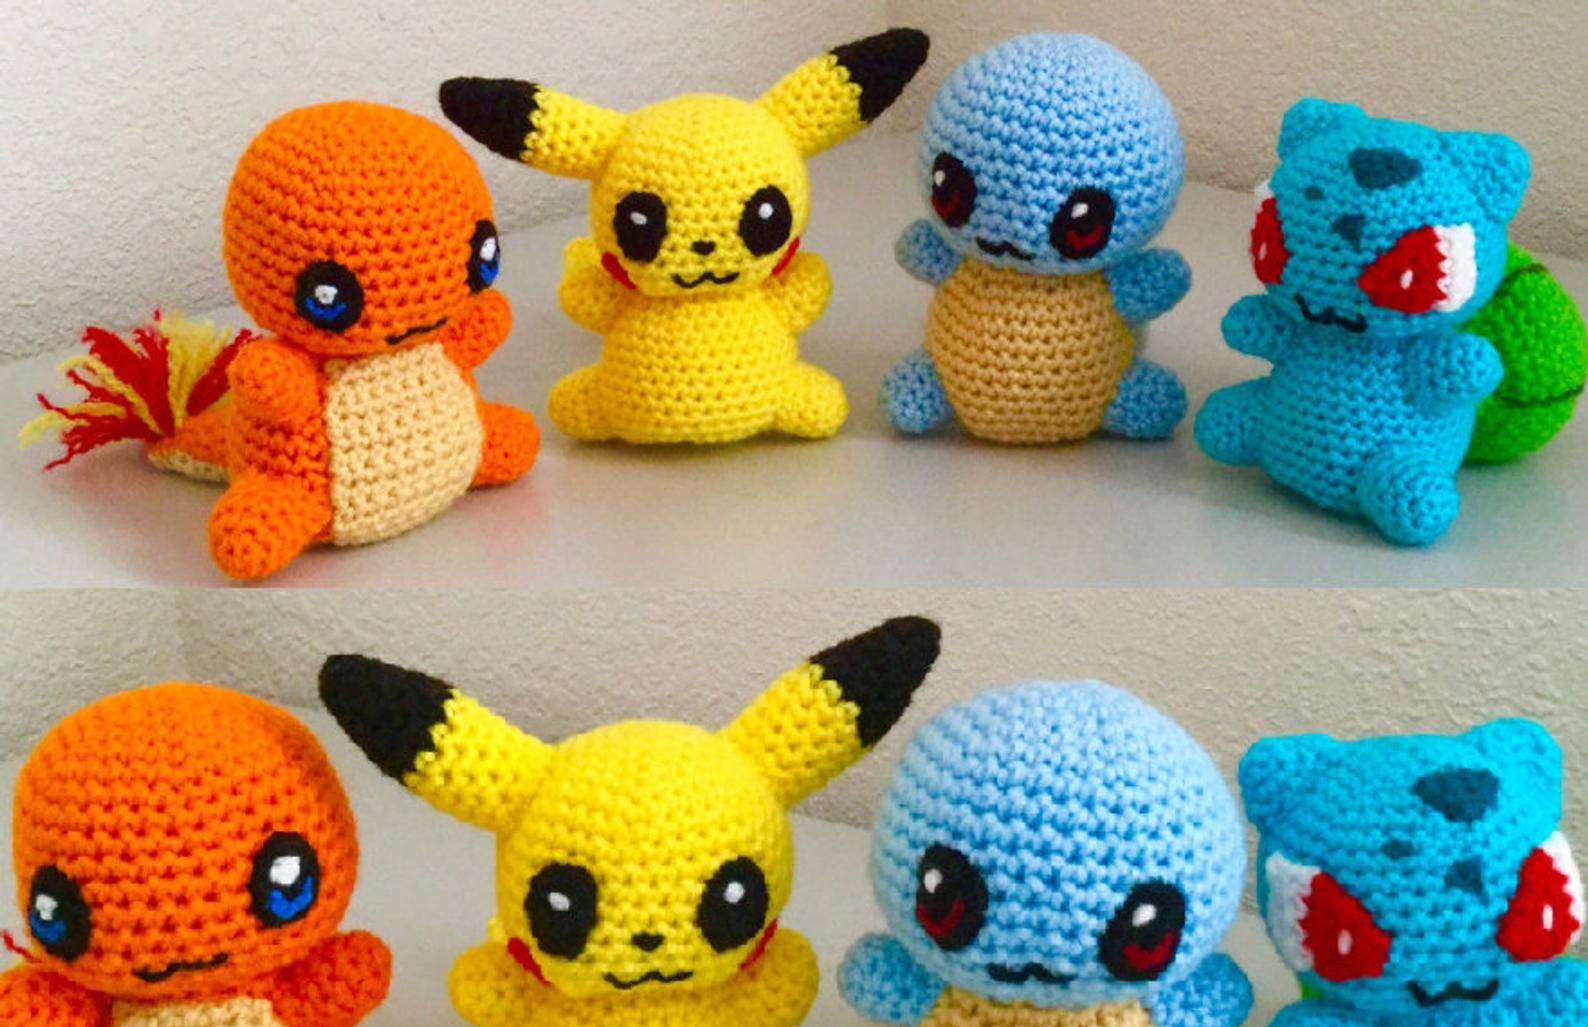 Endivie/Chikorita häkeln/crochet by cute_plushies_crochet ... | 1027x1588